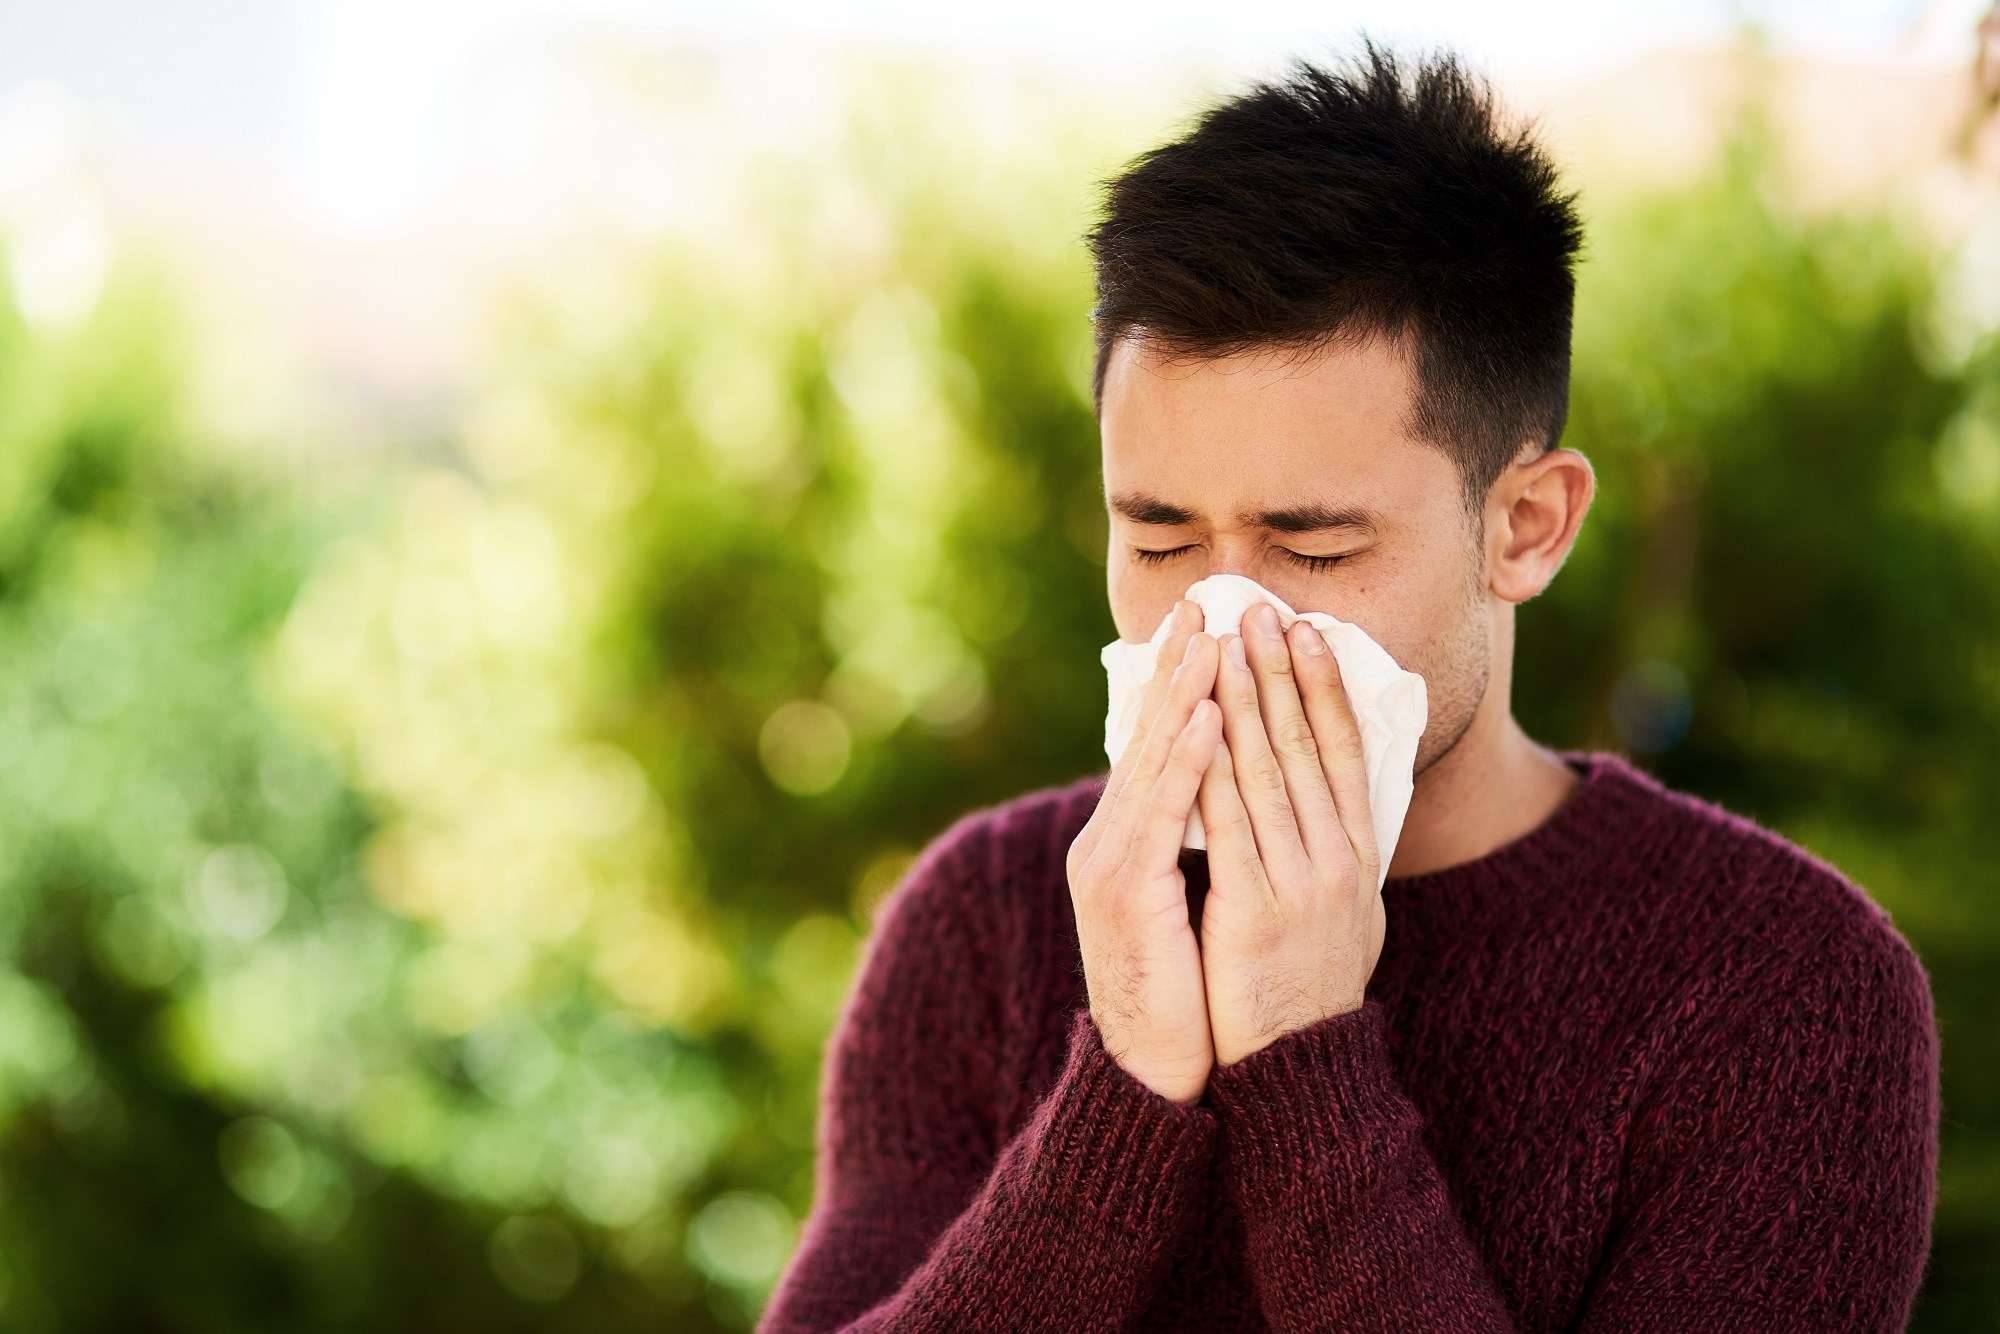 GSP301 Nasal Spray Improves QoL Seasonal Allergic Rhinitis